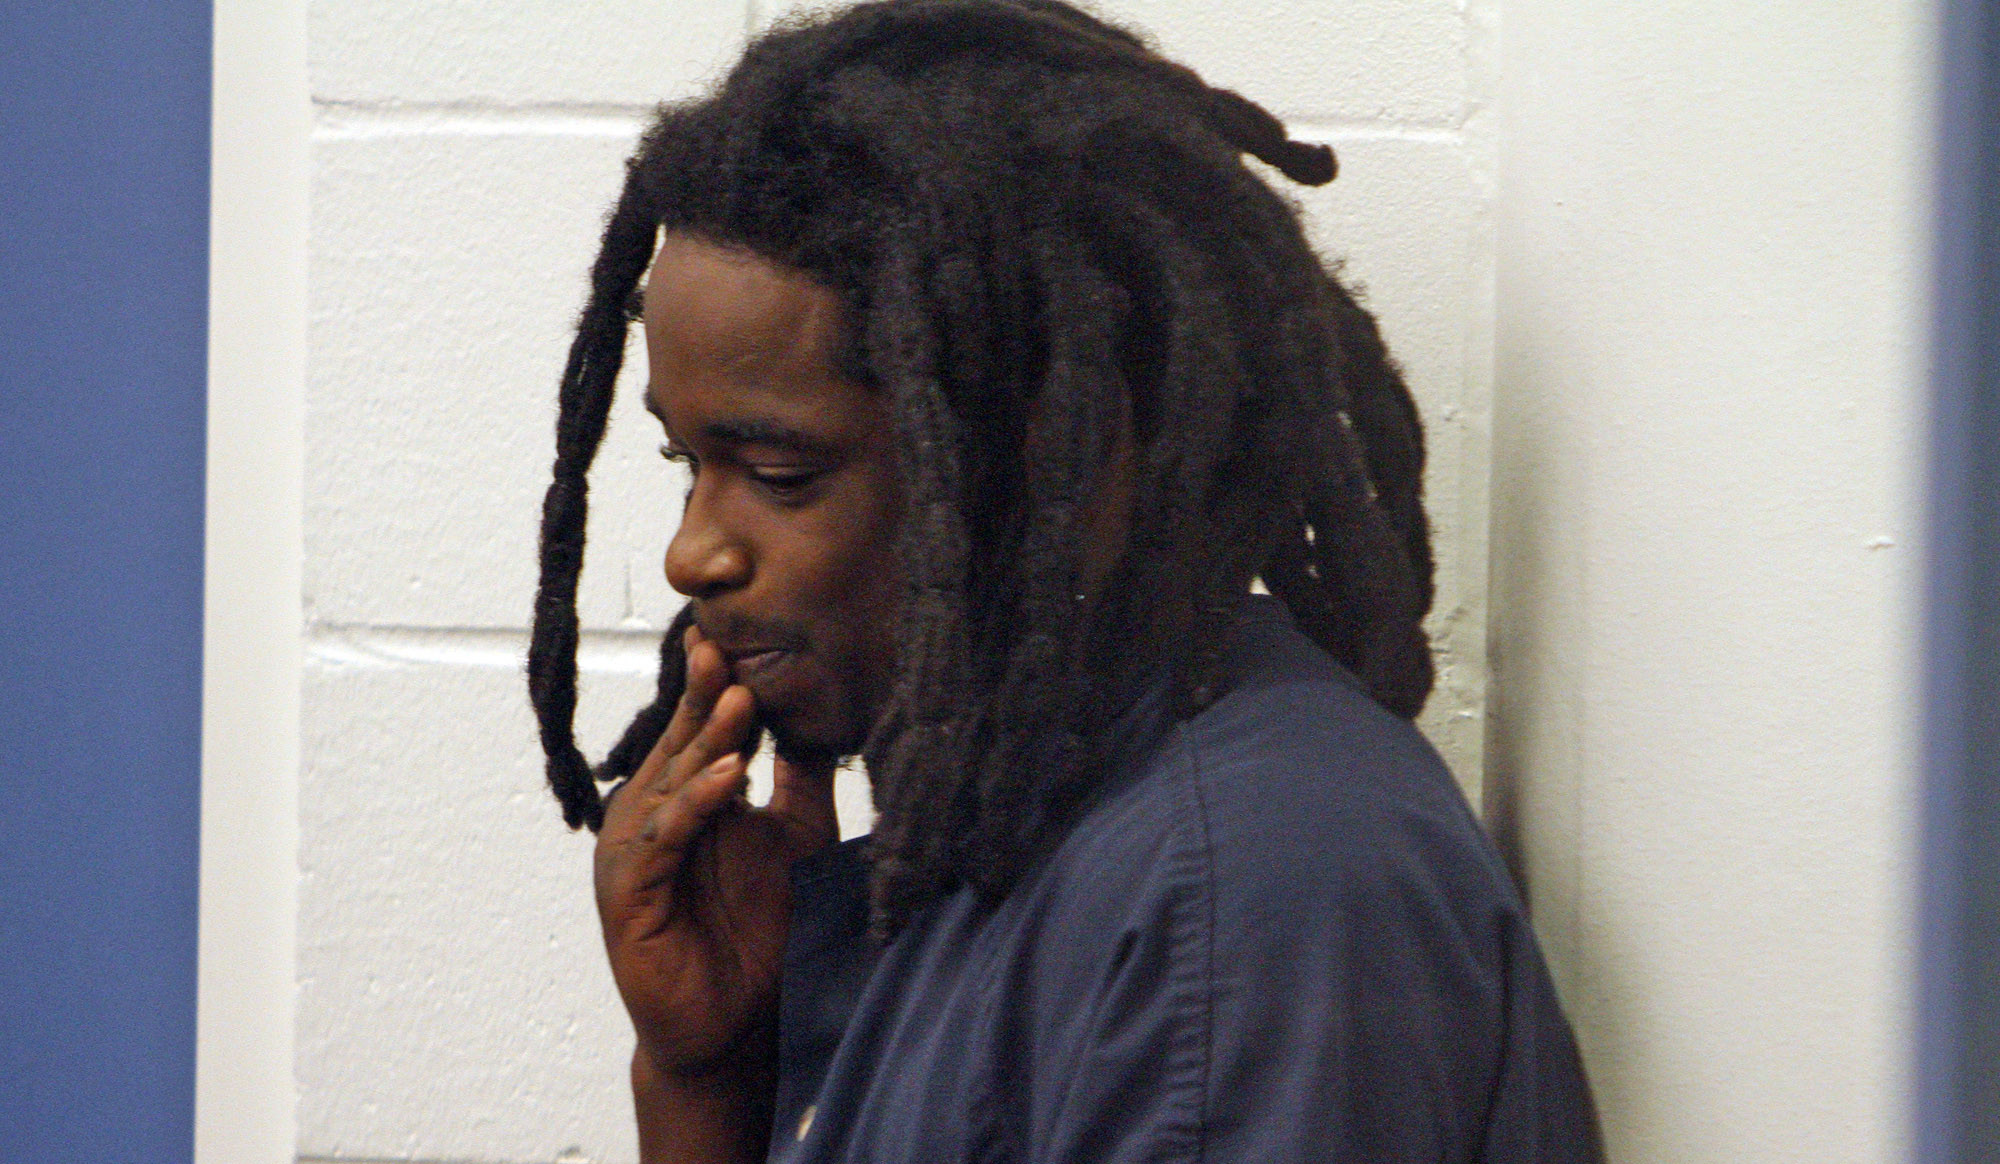 Durick Ingraham got no bond this morning after being charged in fatal shooting death of a Texas high school football star Dino Cannon outside Orlando's Club Limelite.